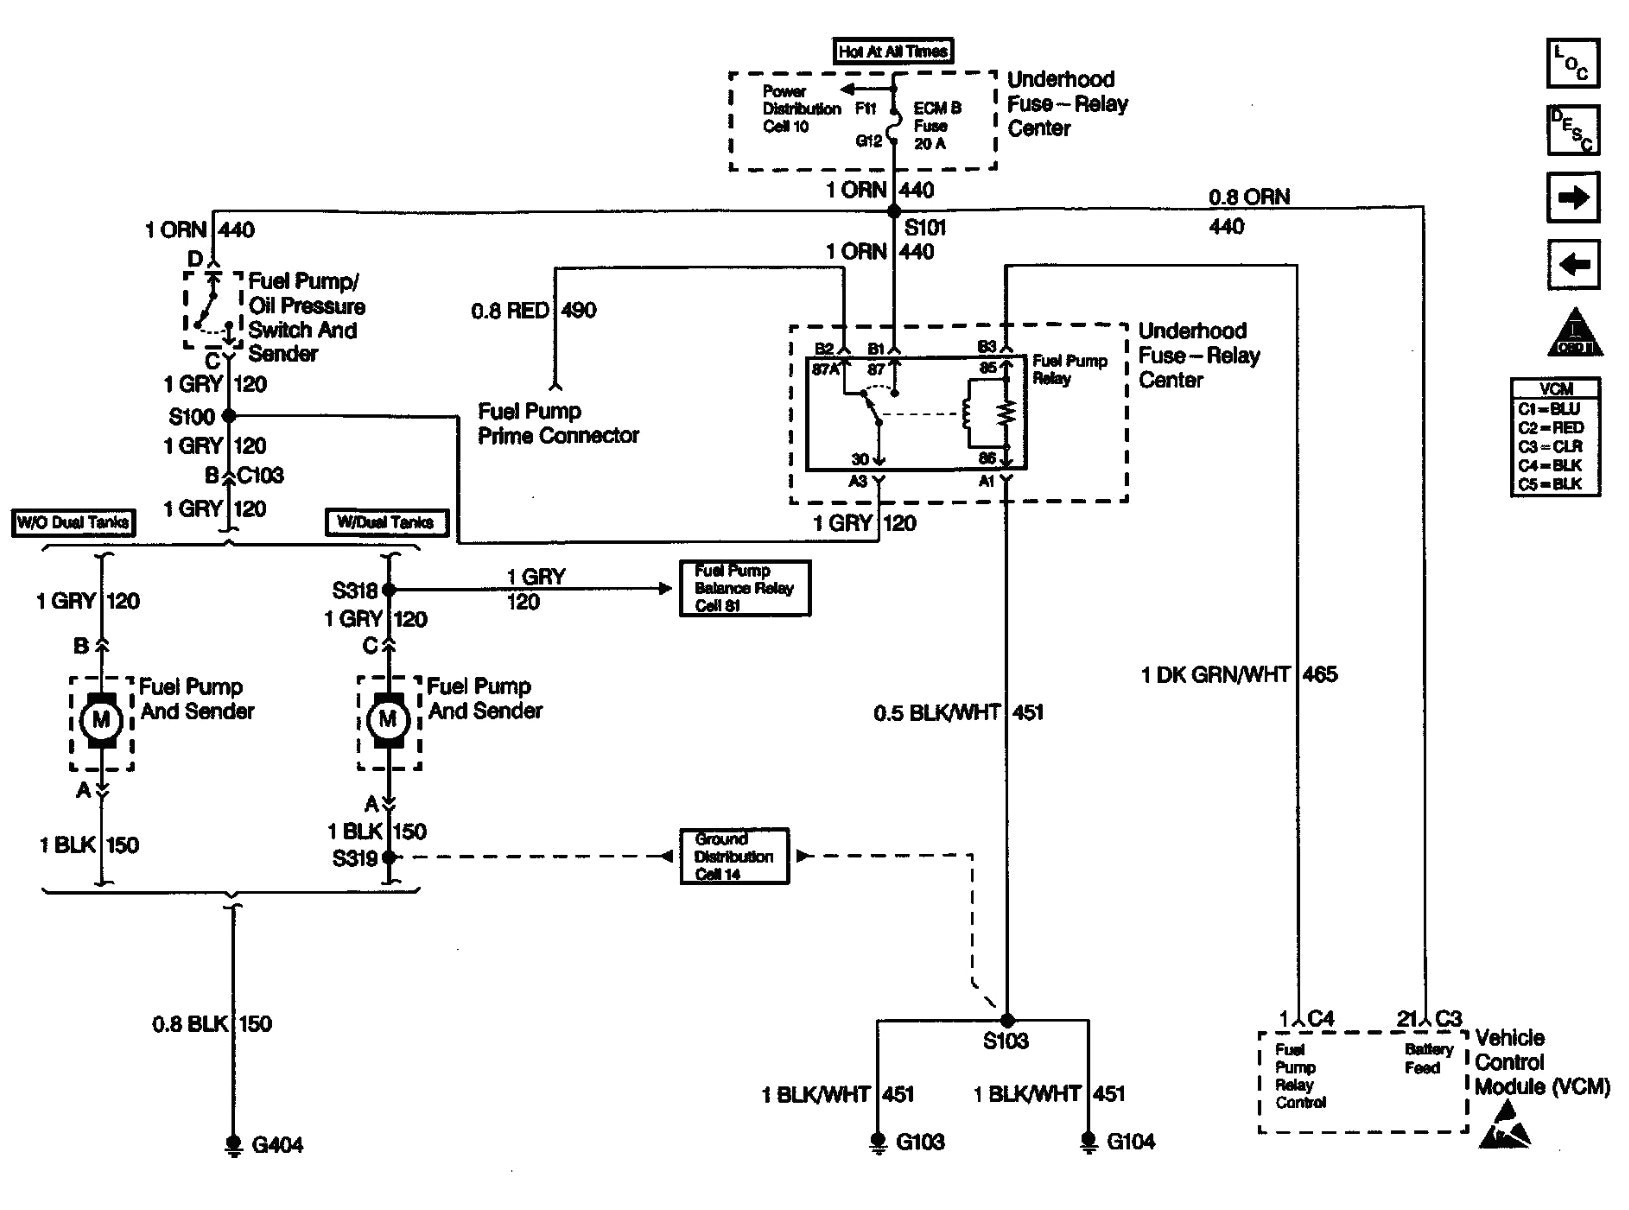 1998 Chevy Silverado Fuel Pump Wiring Diagram Wiring Diagram Image 1998  Chevy Silverado Wiring Harness Diagram 1998 Chevy Silverado Wiring Harness